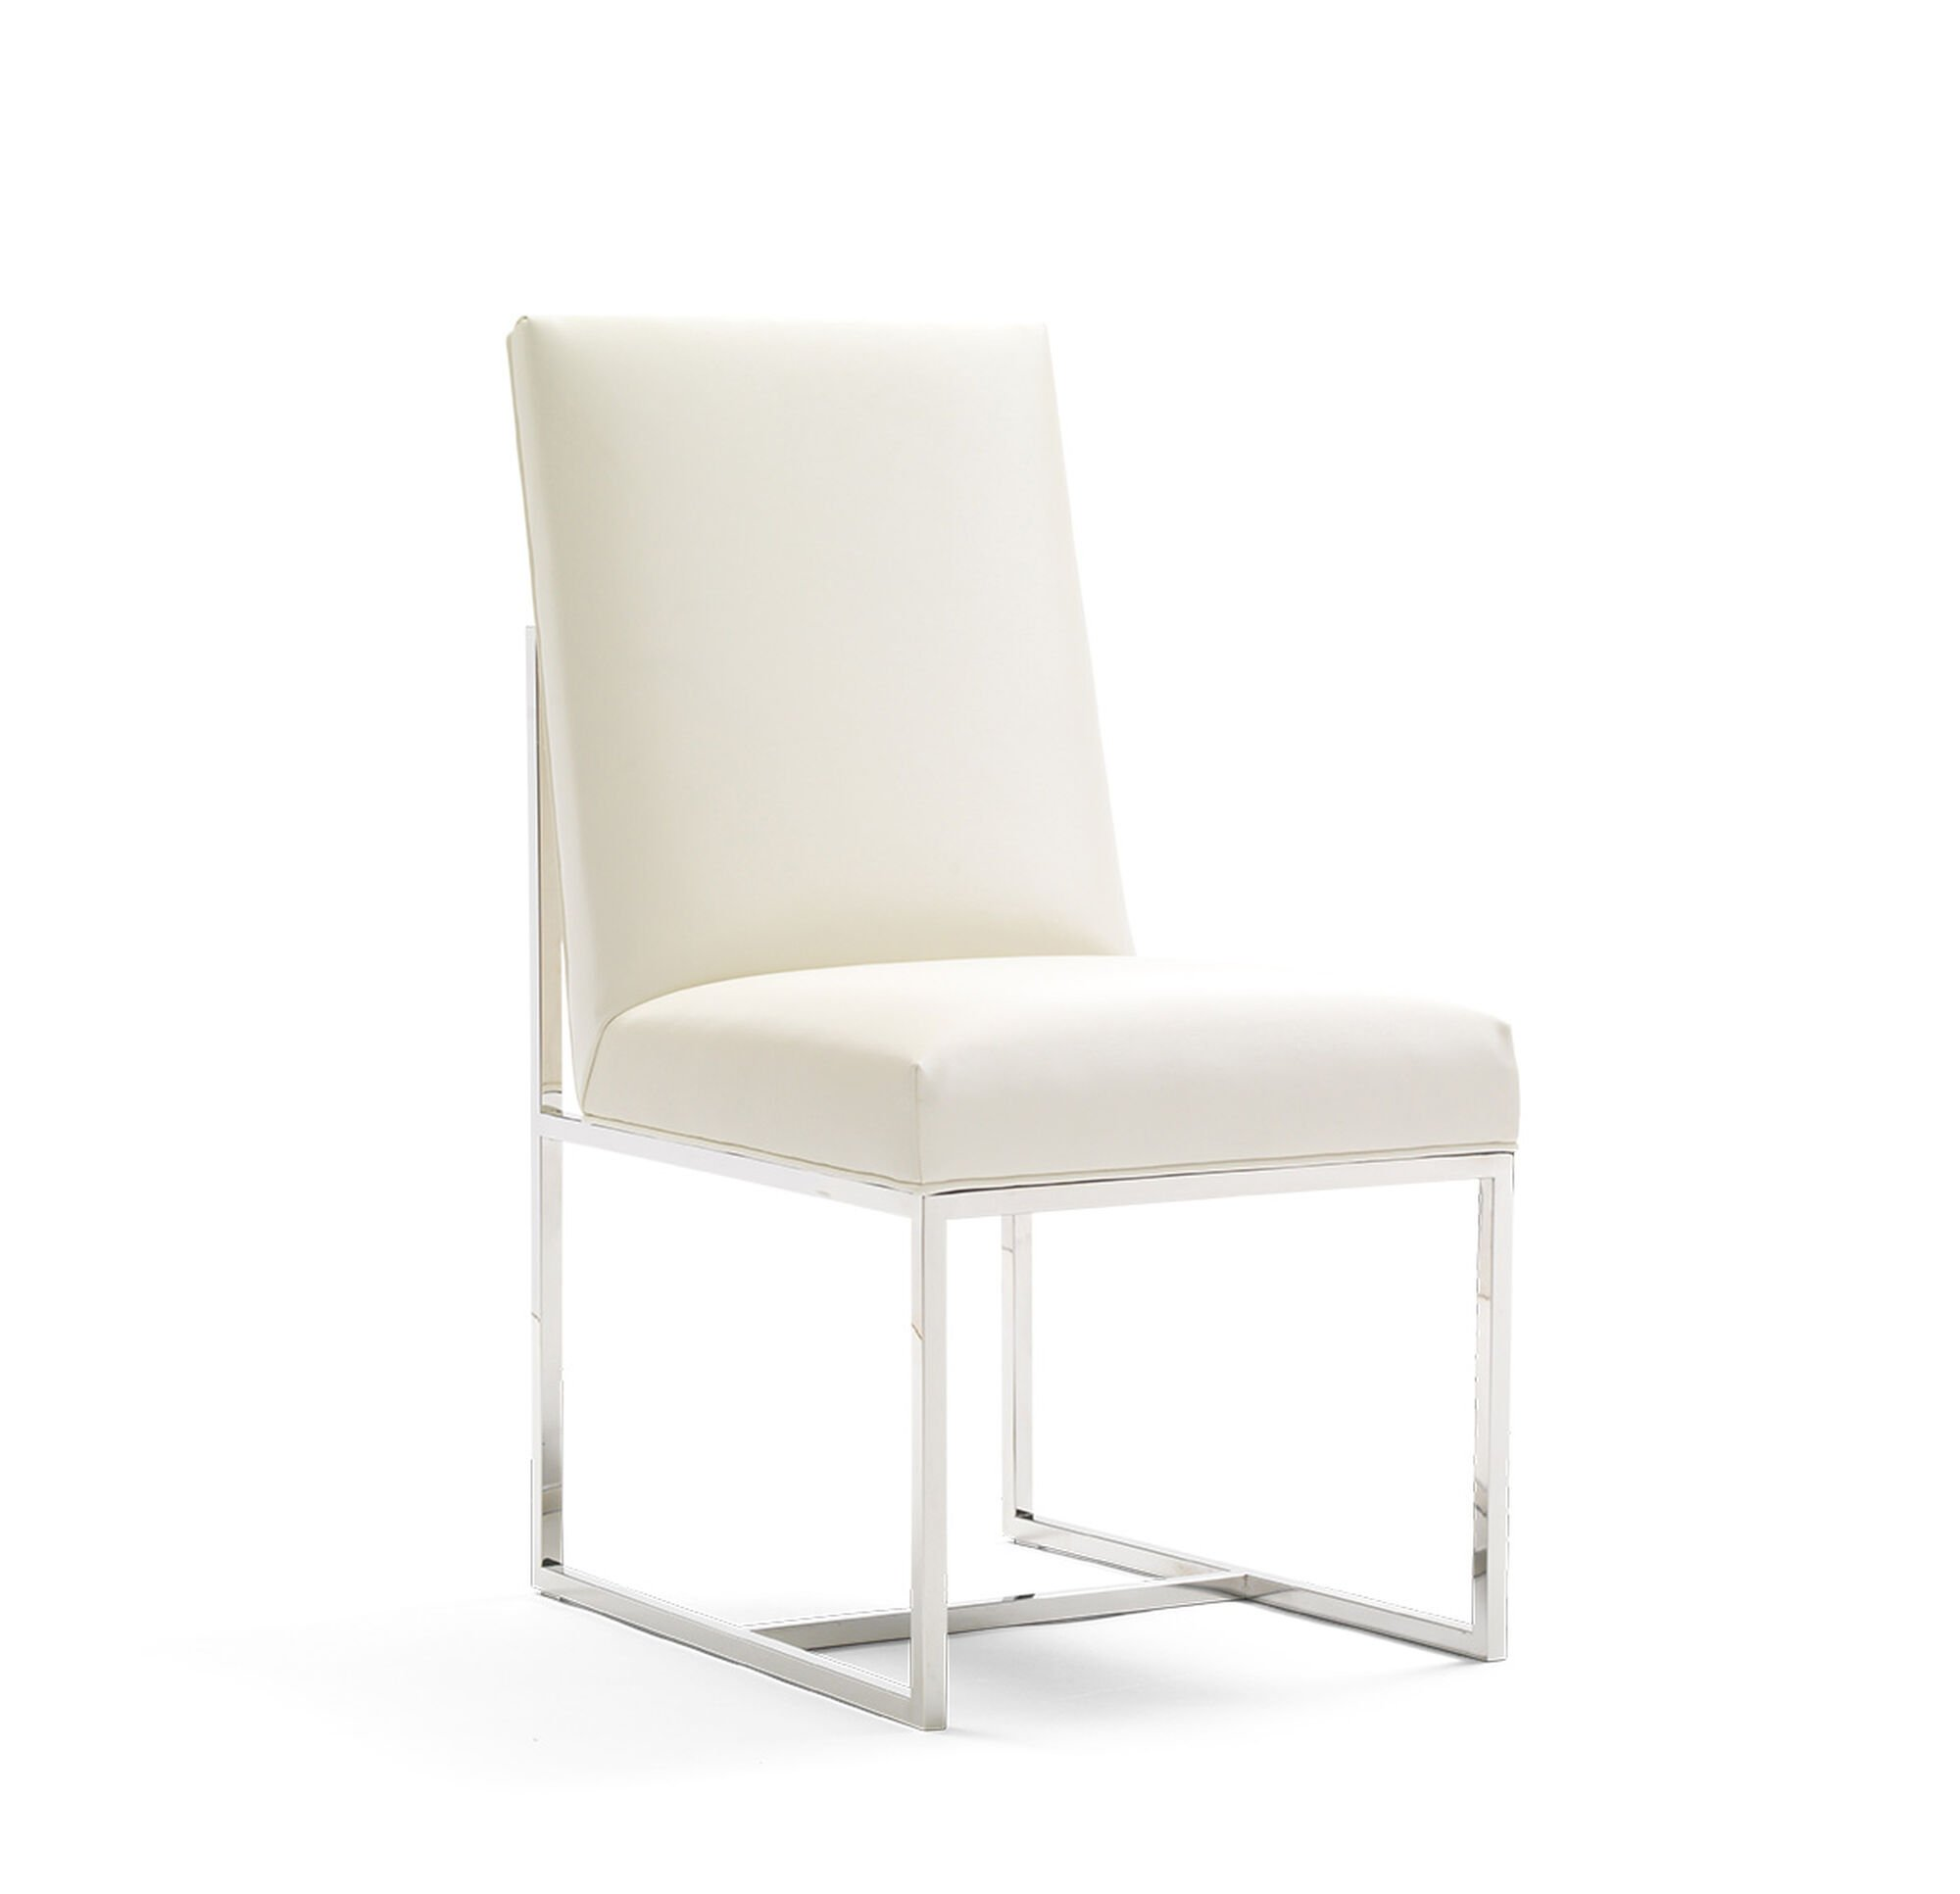 GAGE LOW DINING CHAIR